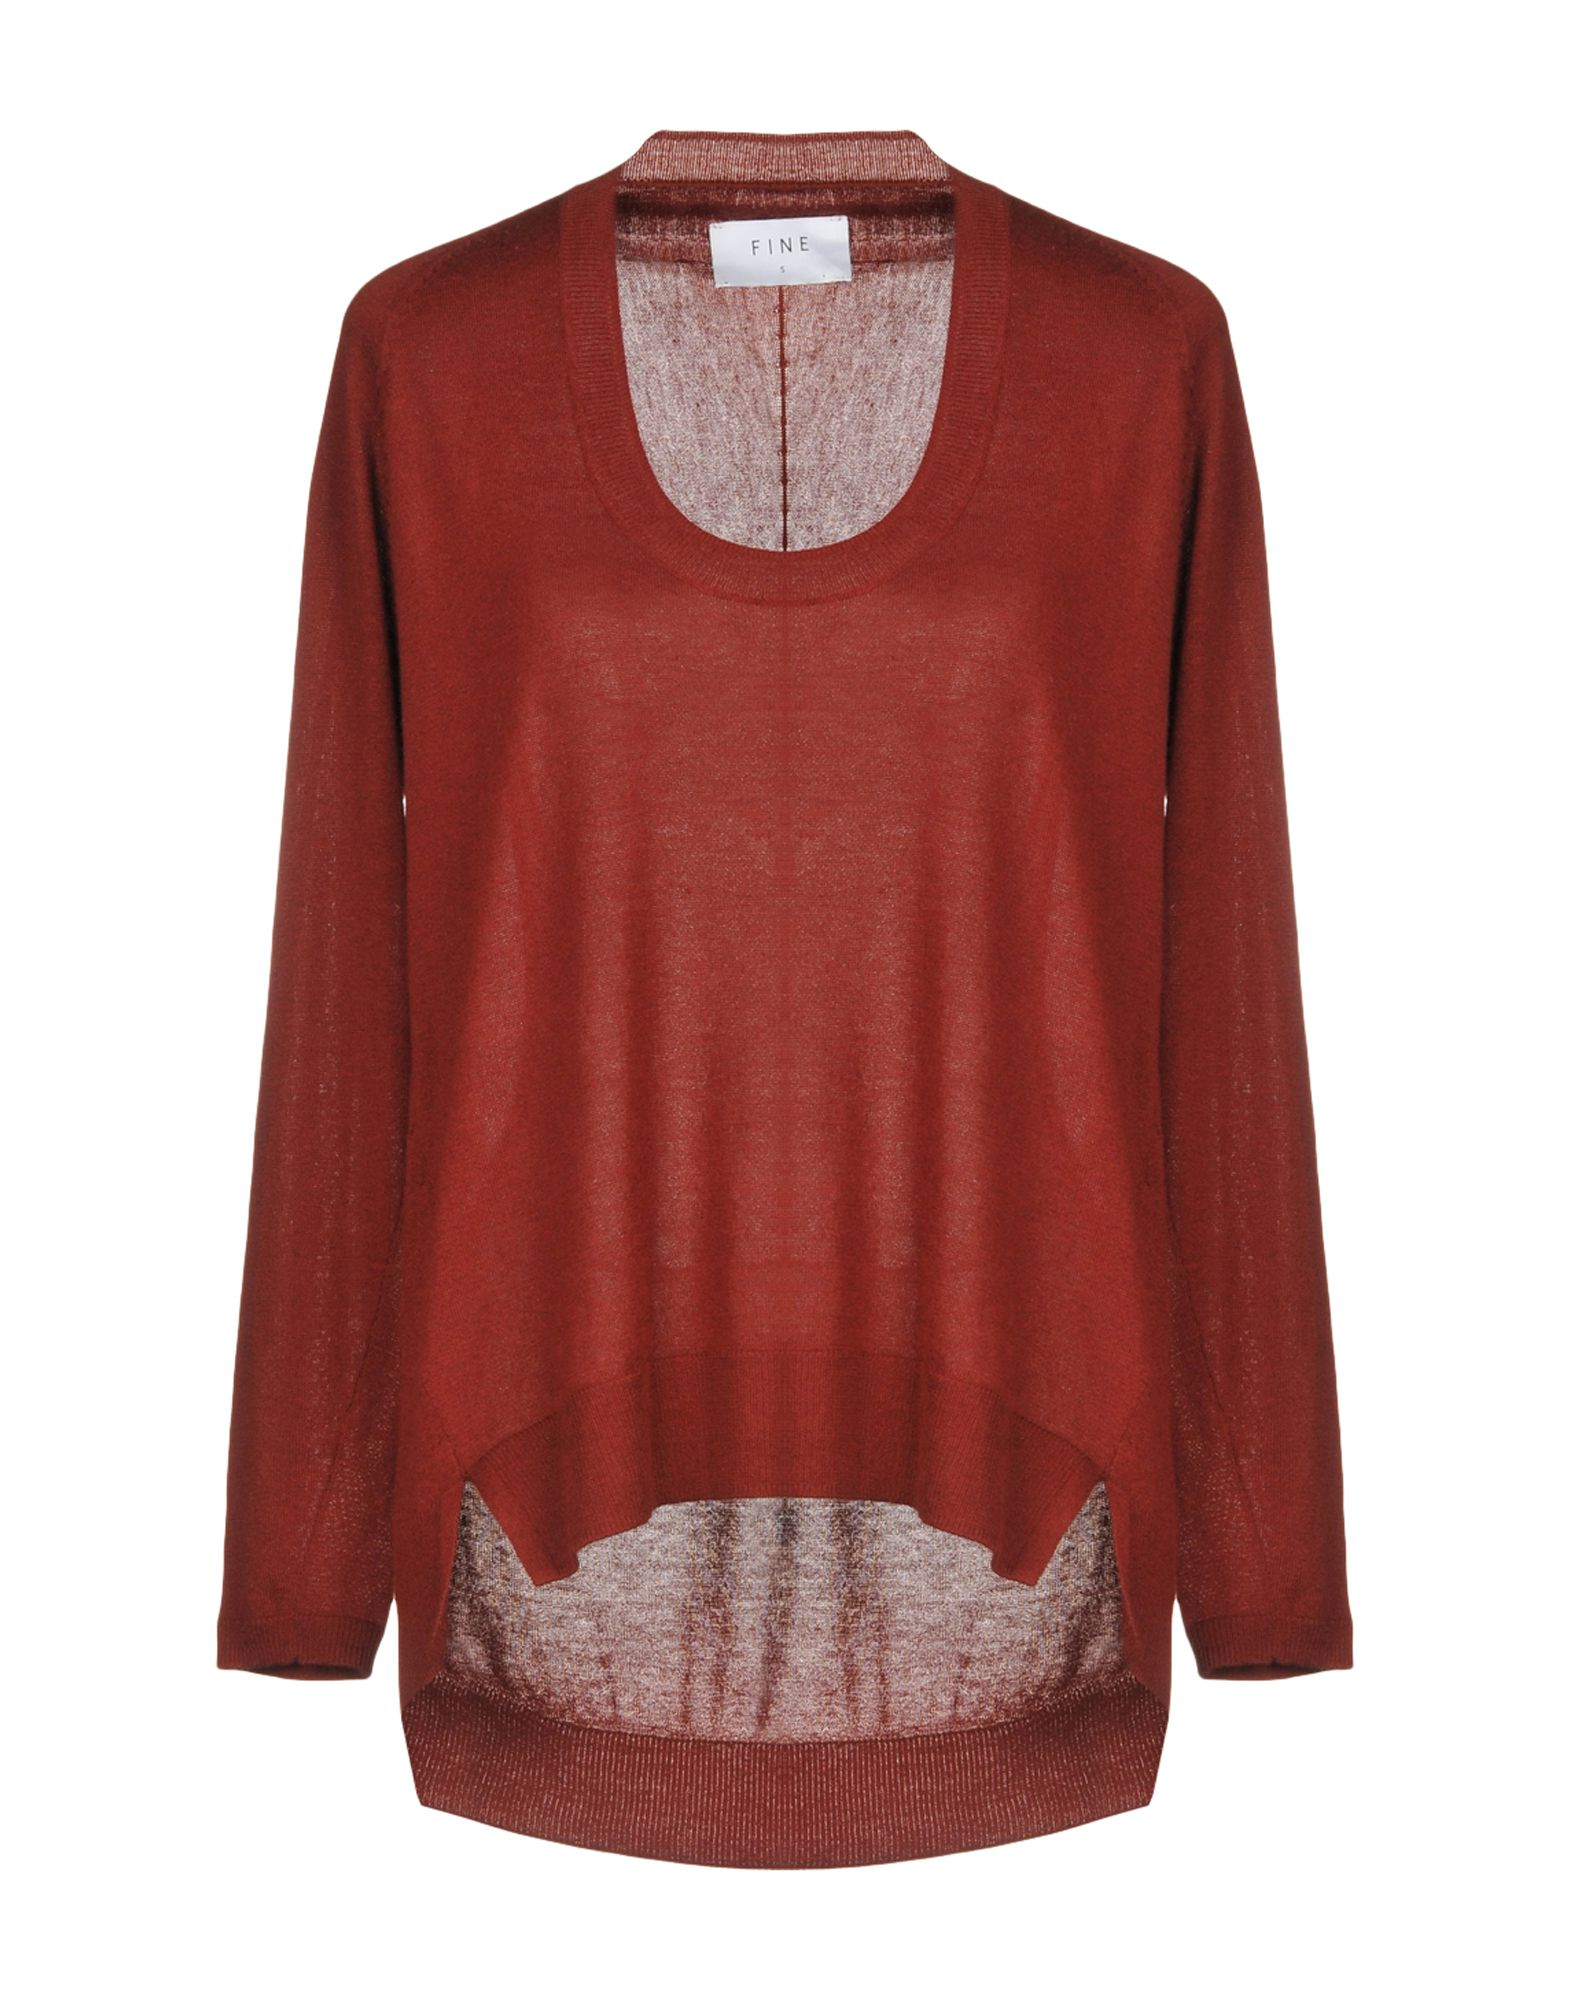 FINE COLLECTION Sweater in Maroon